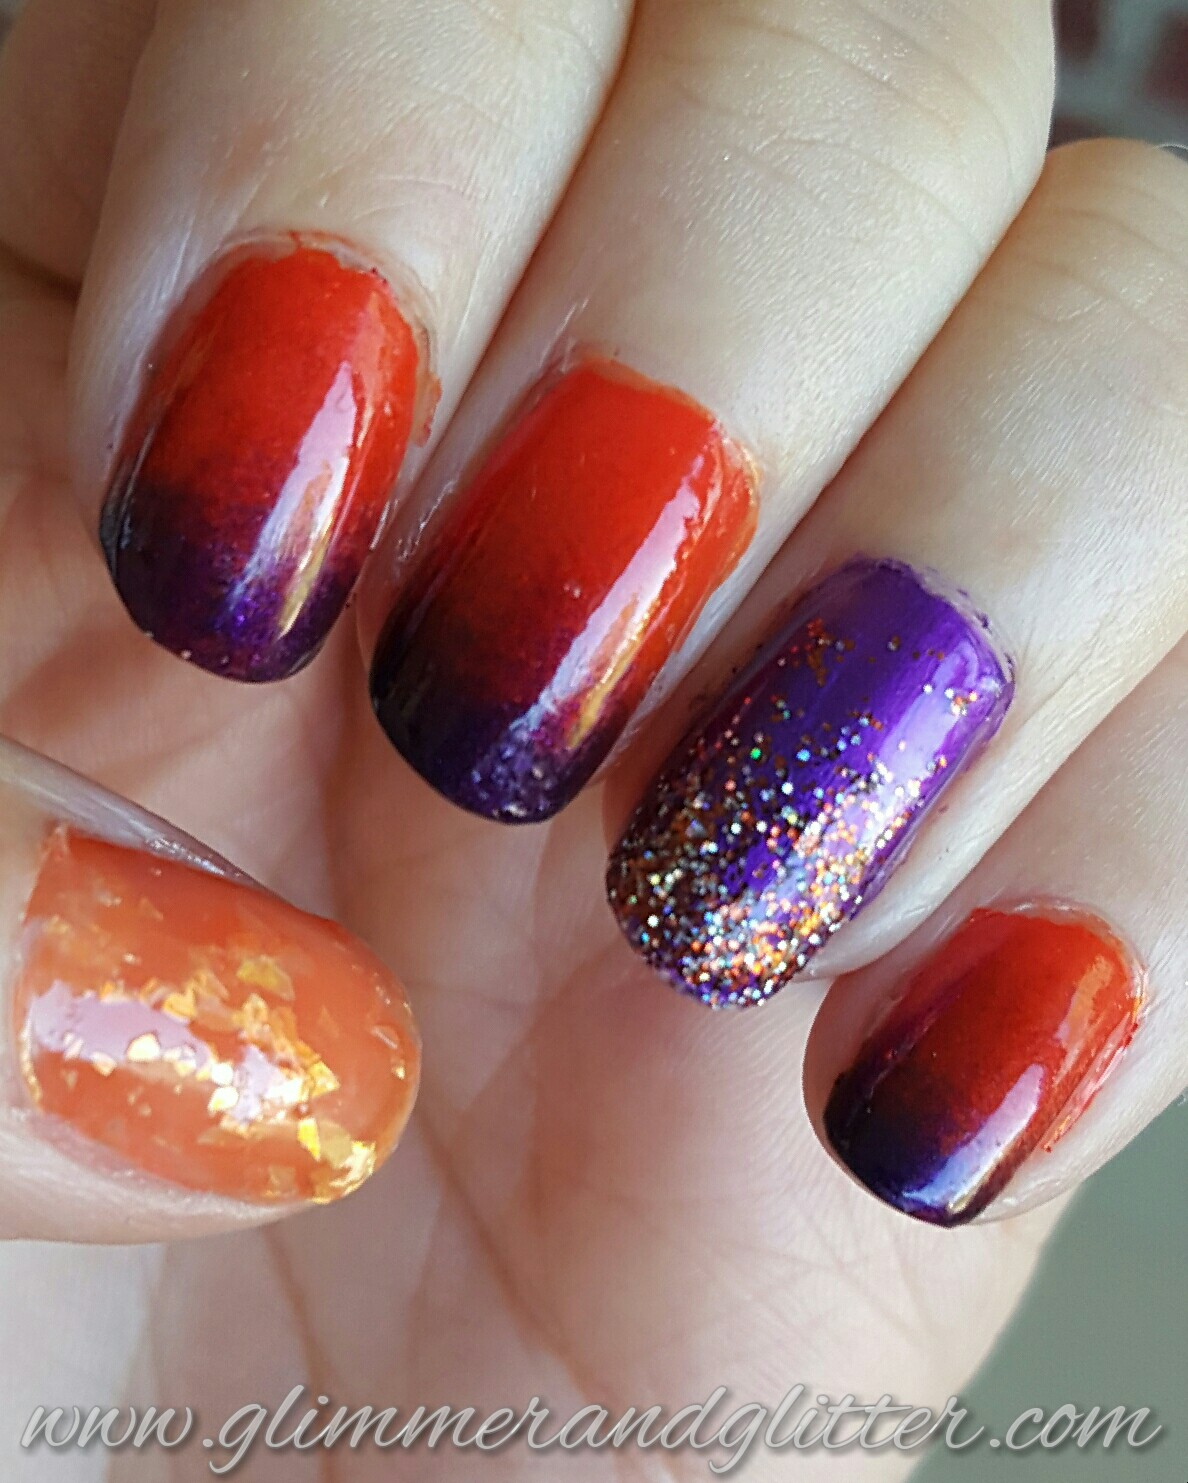 Glimmer and Glitter - A Nail Polish Blog: Halloween Sunset Gradient